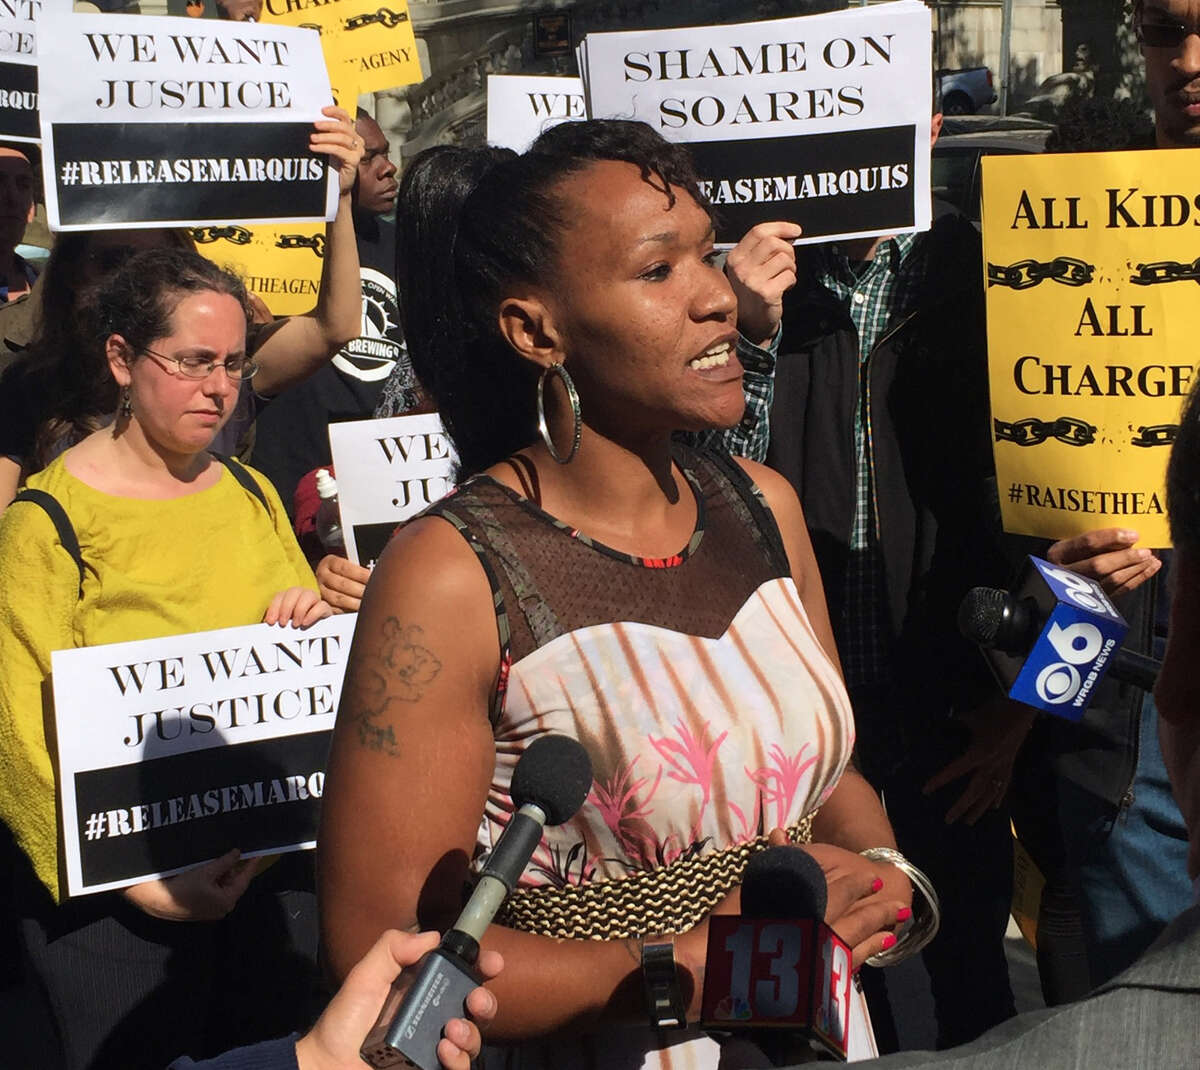 Aisha Dixon speaks to reporters about her son on Friday, Sept. 16, outside the Robert Abrams Building for Law and Justice, where the appeal of Marquis Dixon's conviction was heard. Marquis Dixon, raised in Catskill and Albany, was sentenced to nine years in prison for stealing sneakers. (Robert Gavin / Times Union)